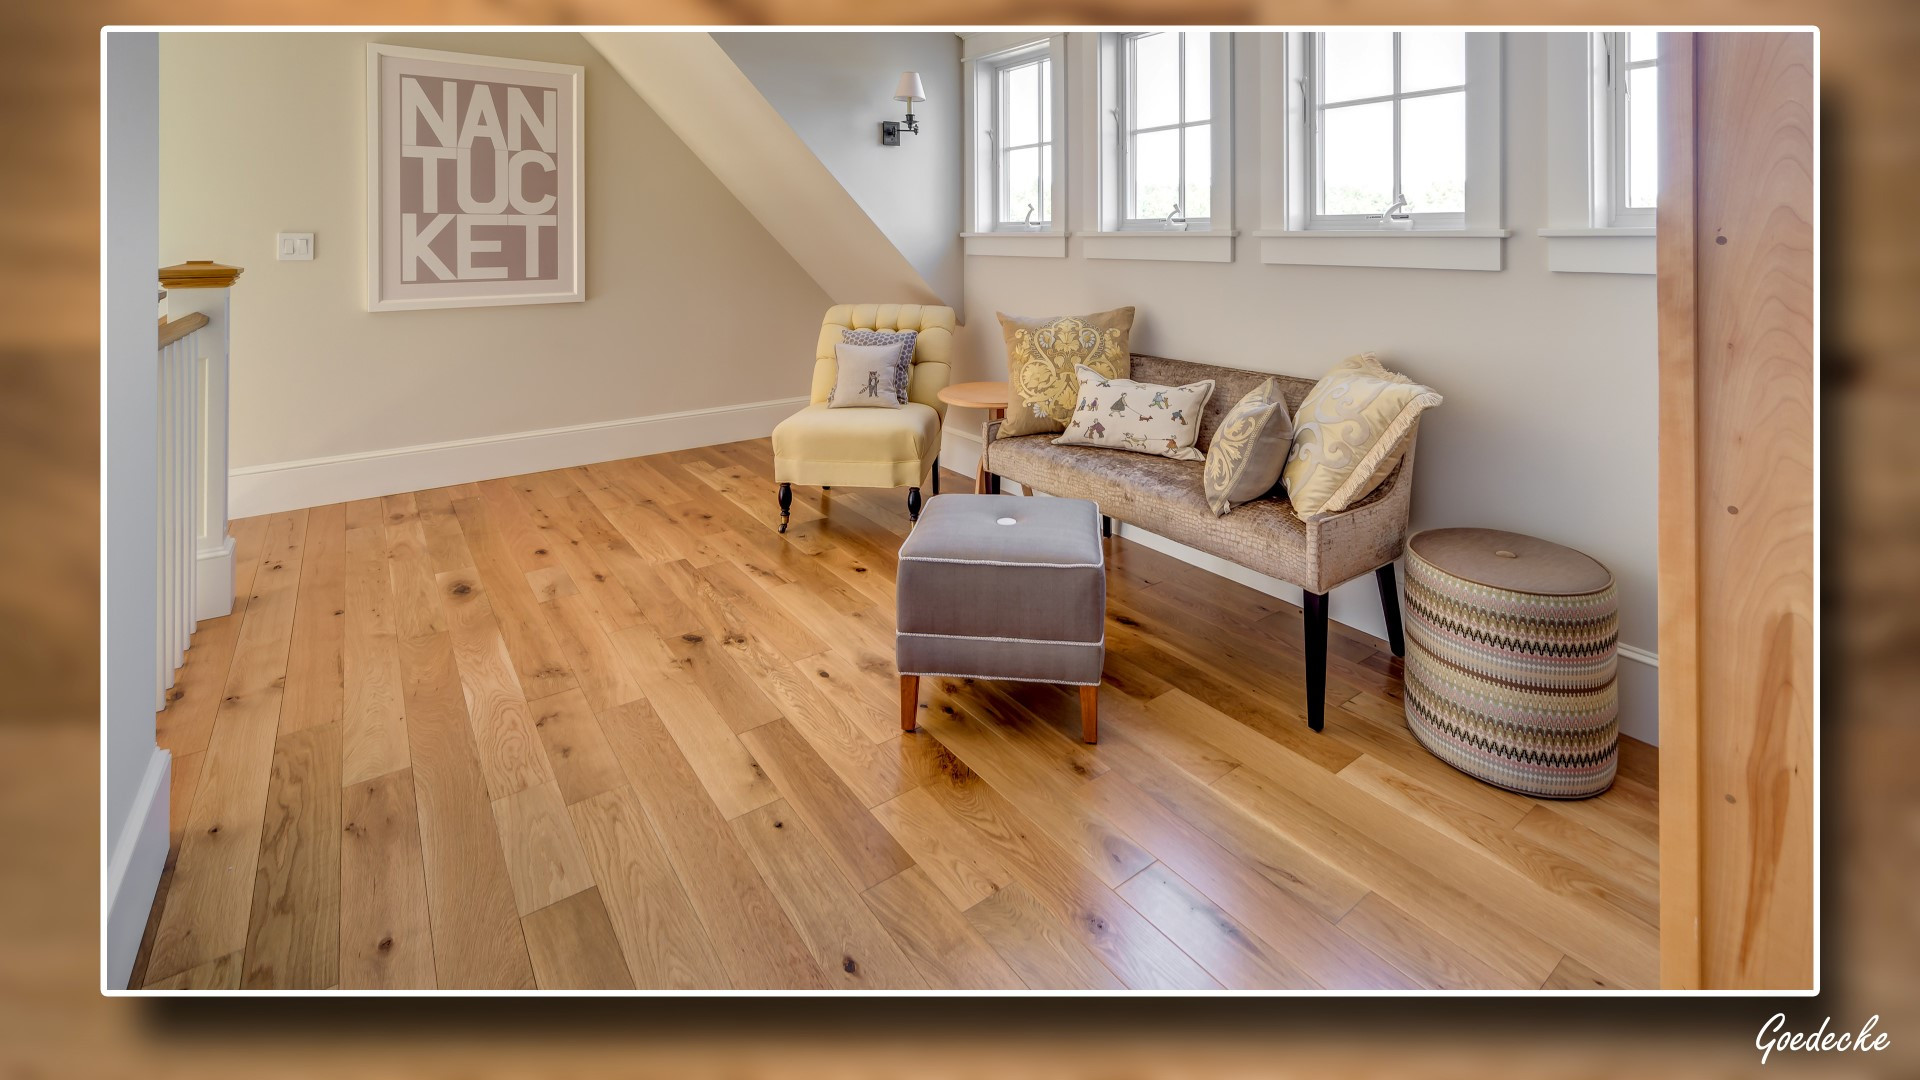 hardwood flooring nashua nh of hardwood vs tile goedecke decorating inside many homeowners choose hardwood flooring for its elegant and timeless appearance it is also important to note that hardwood floors are manufactured in